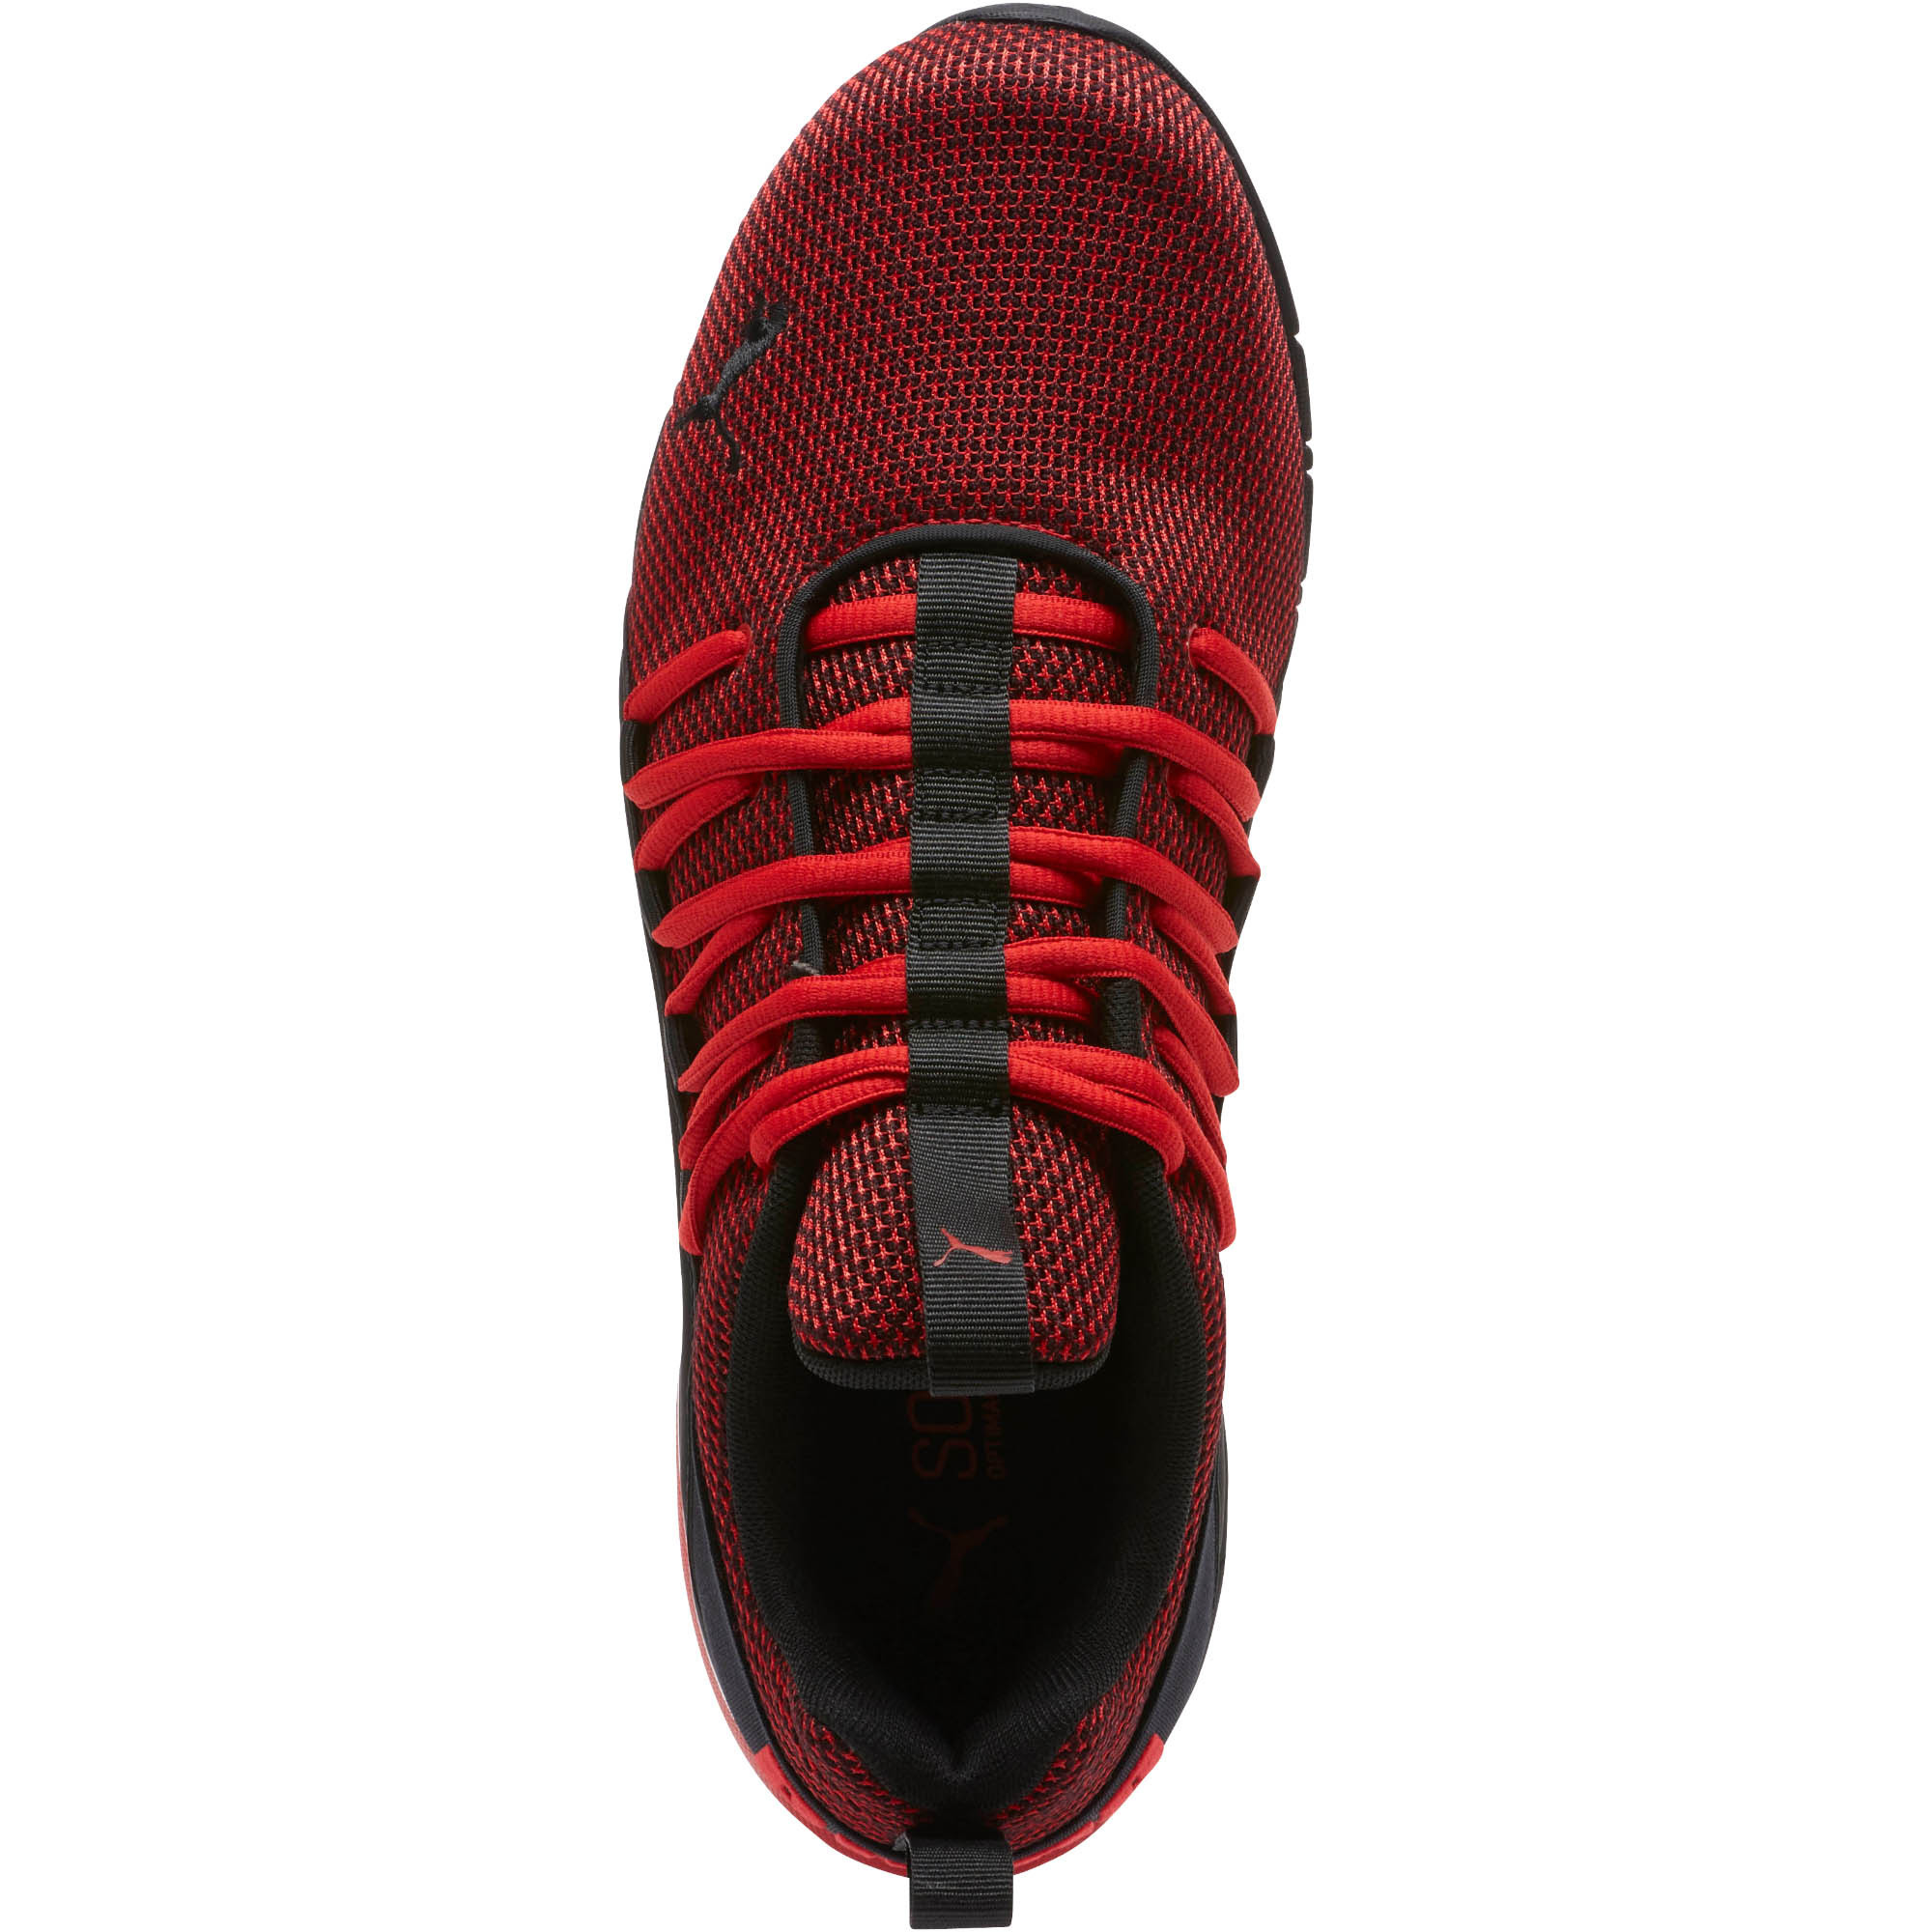 PUMA-Men-039-s-Axelion-Mesh-Training-Shoes thumbnail 6